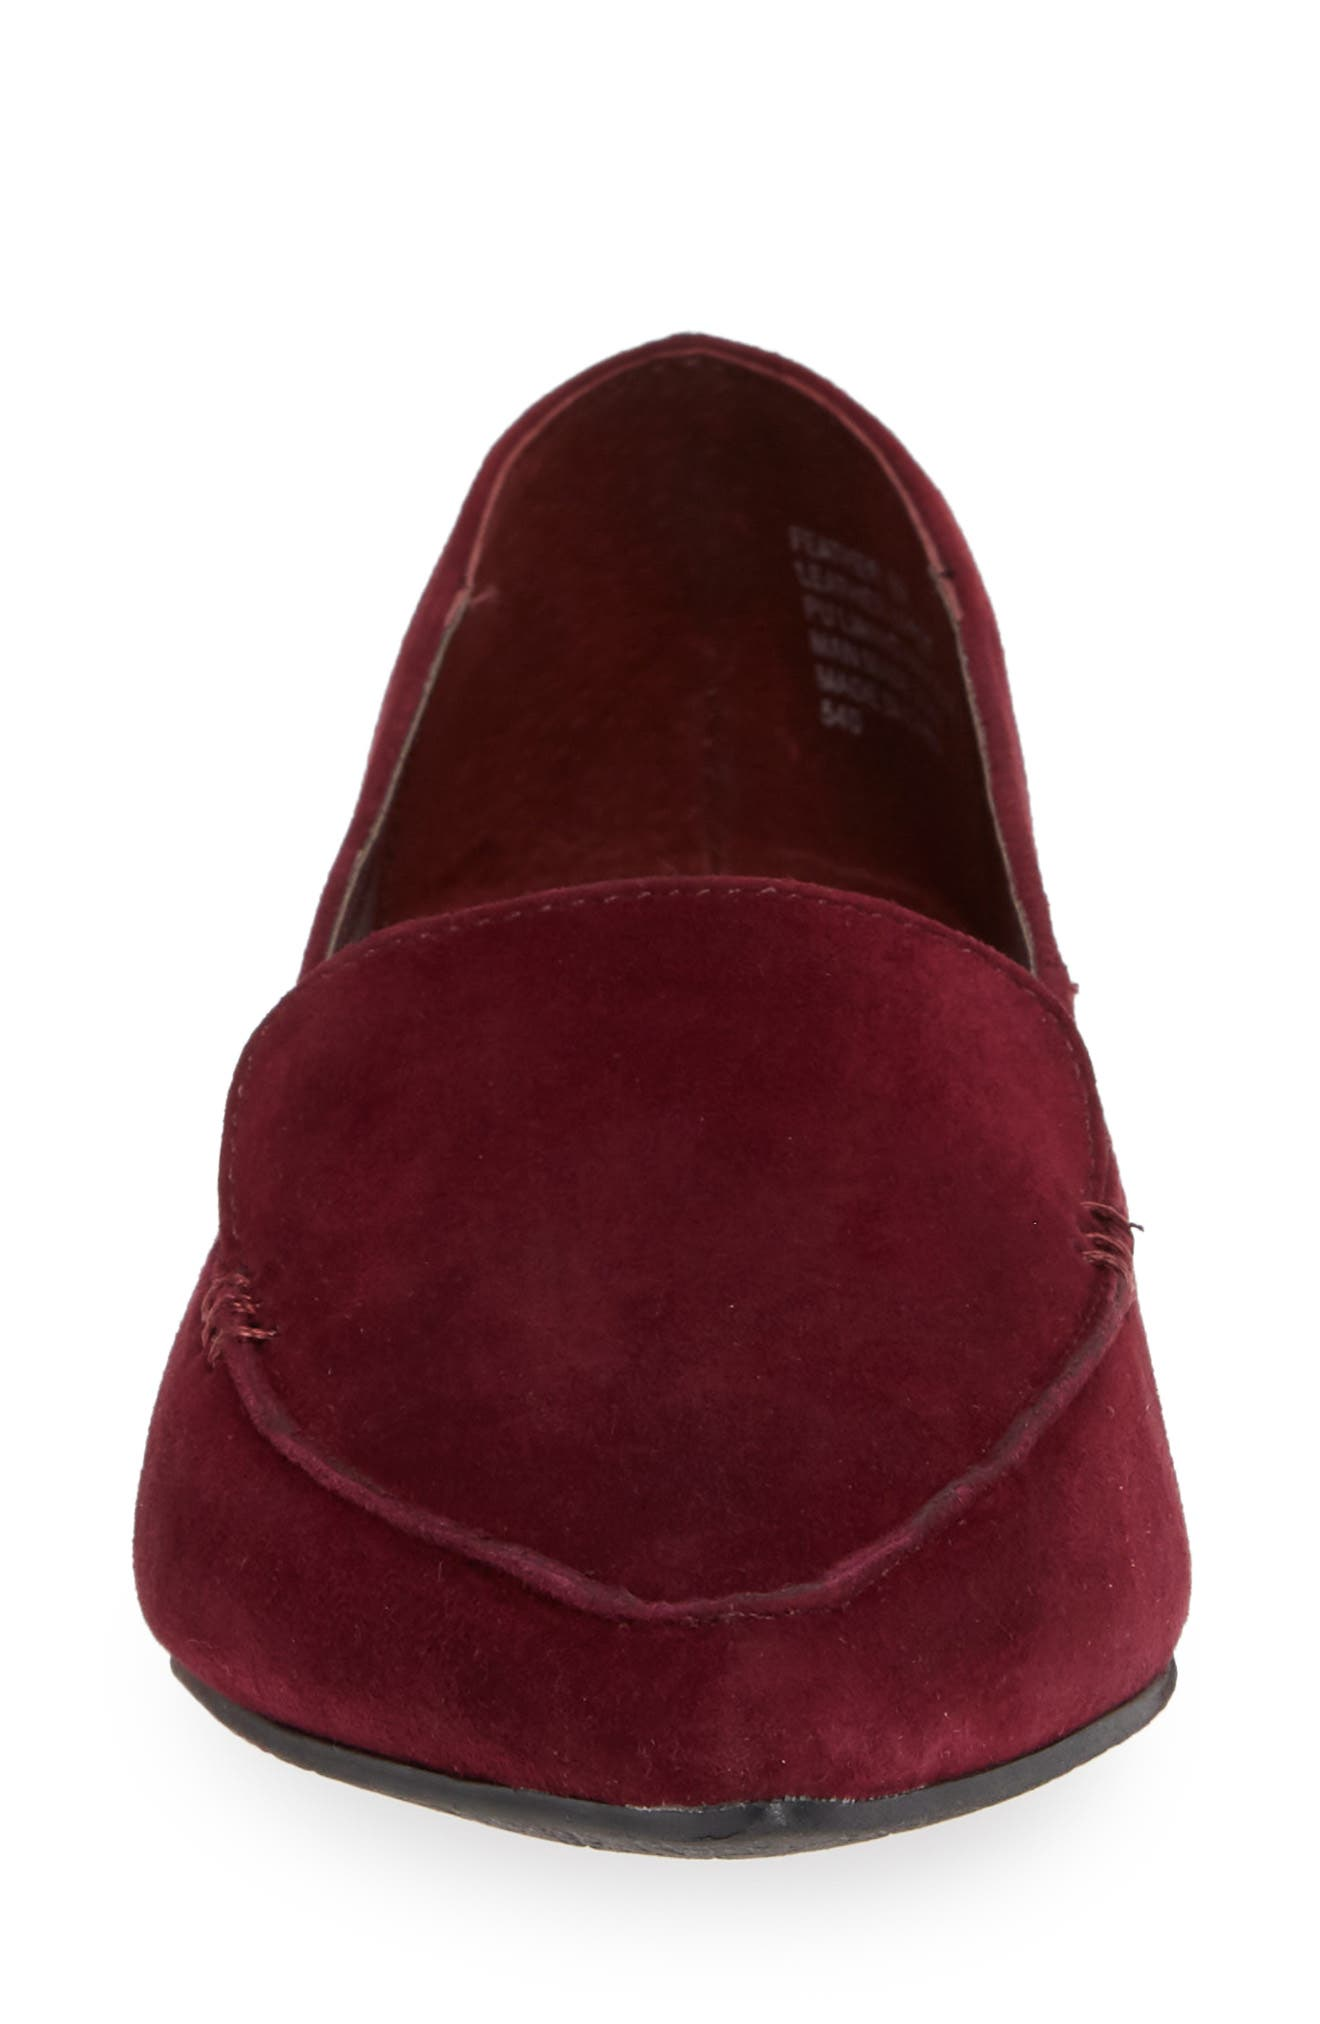 Feather Loafer Flat,                             Alternate thumbnail 4, color,                             BURGUNDY